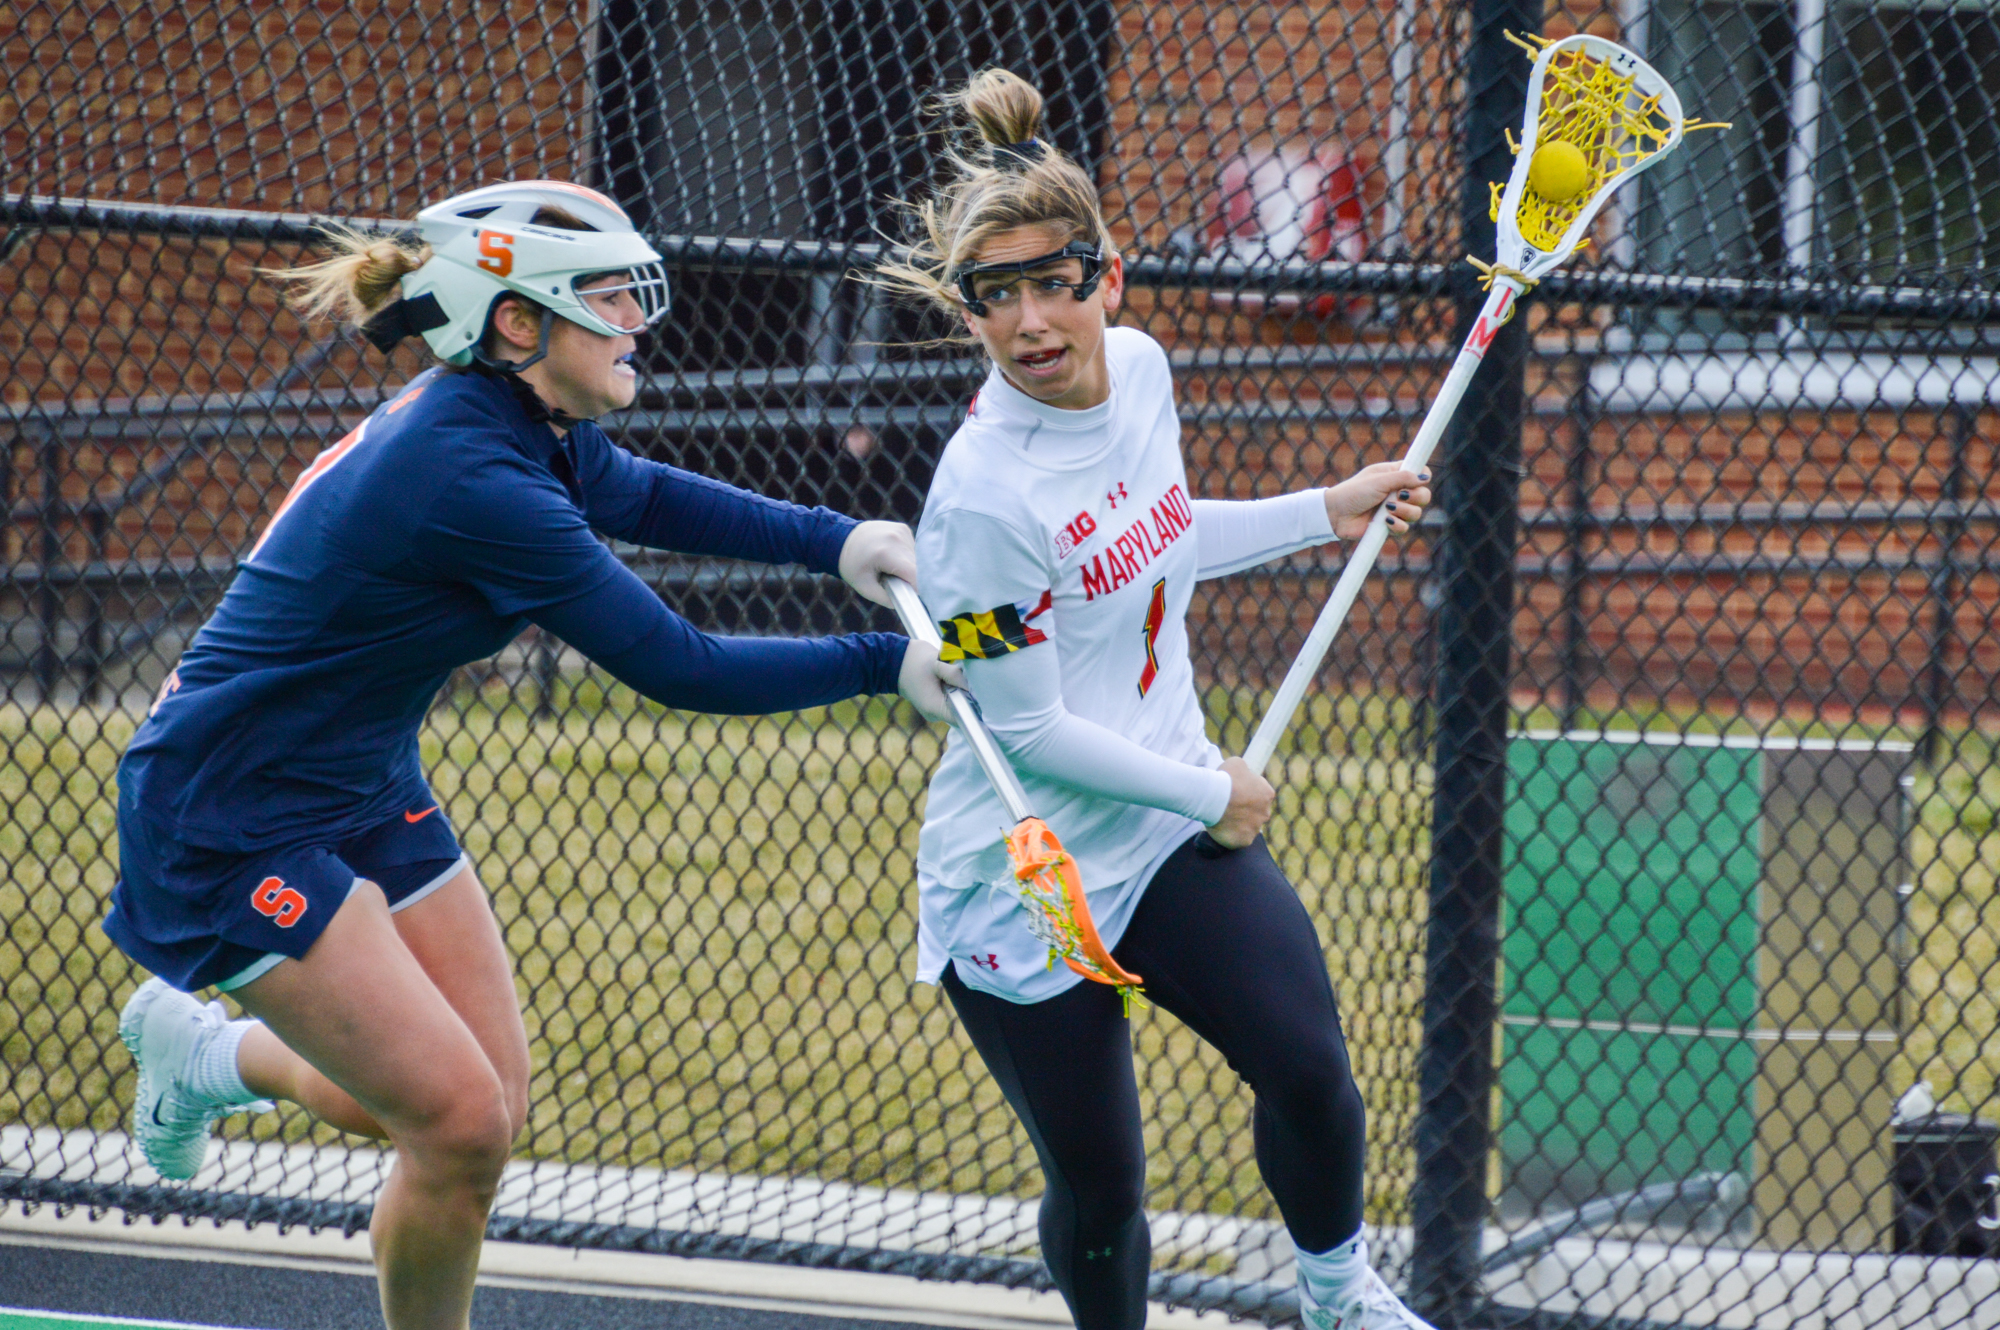 Woman in a white jersey with a lacrosse stick and ball running past a woman in a blue jersey with a lacrosse stick